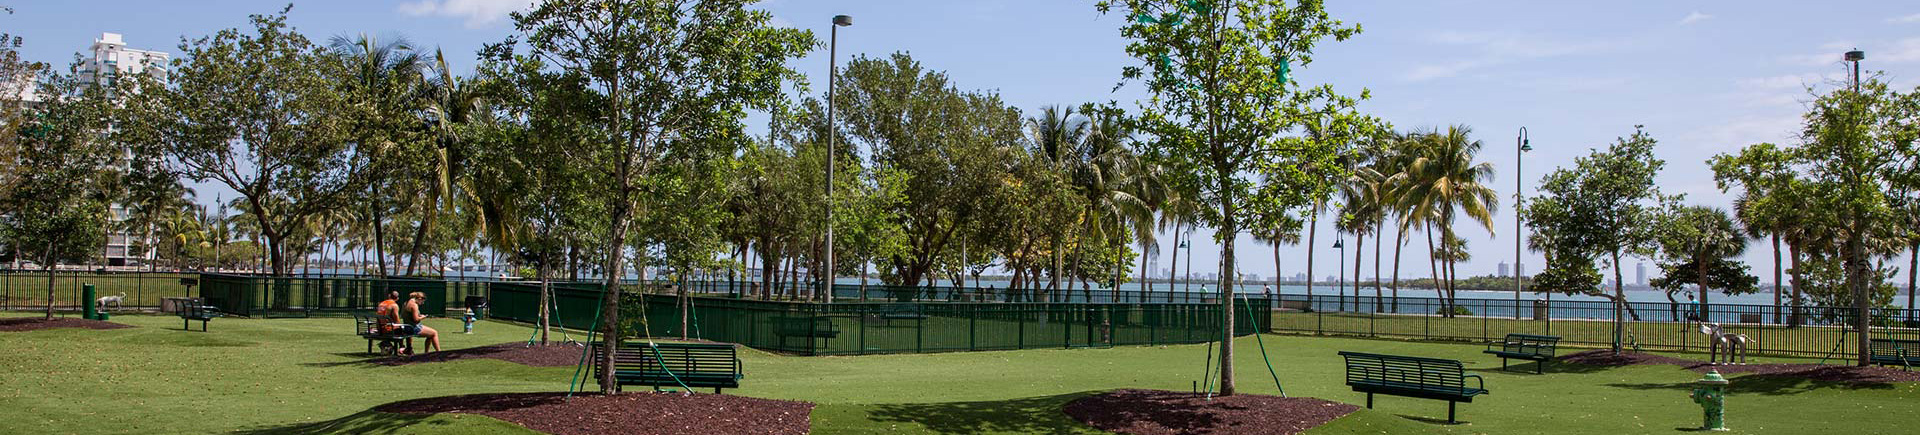 Bay Parc Plaza Apartments in Miami, FL - Dog Park